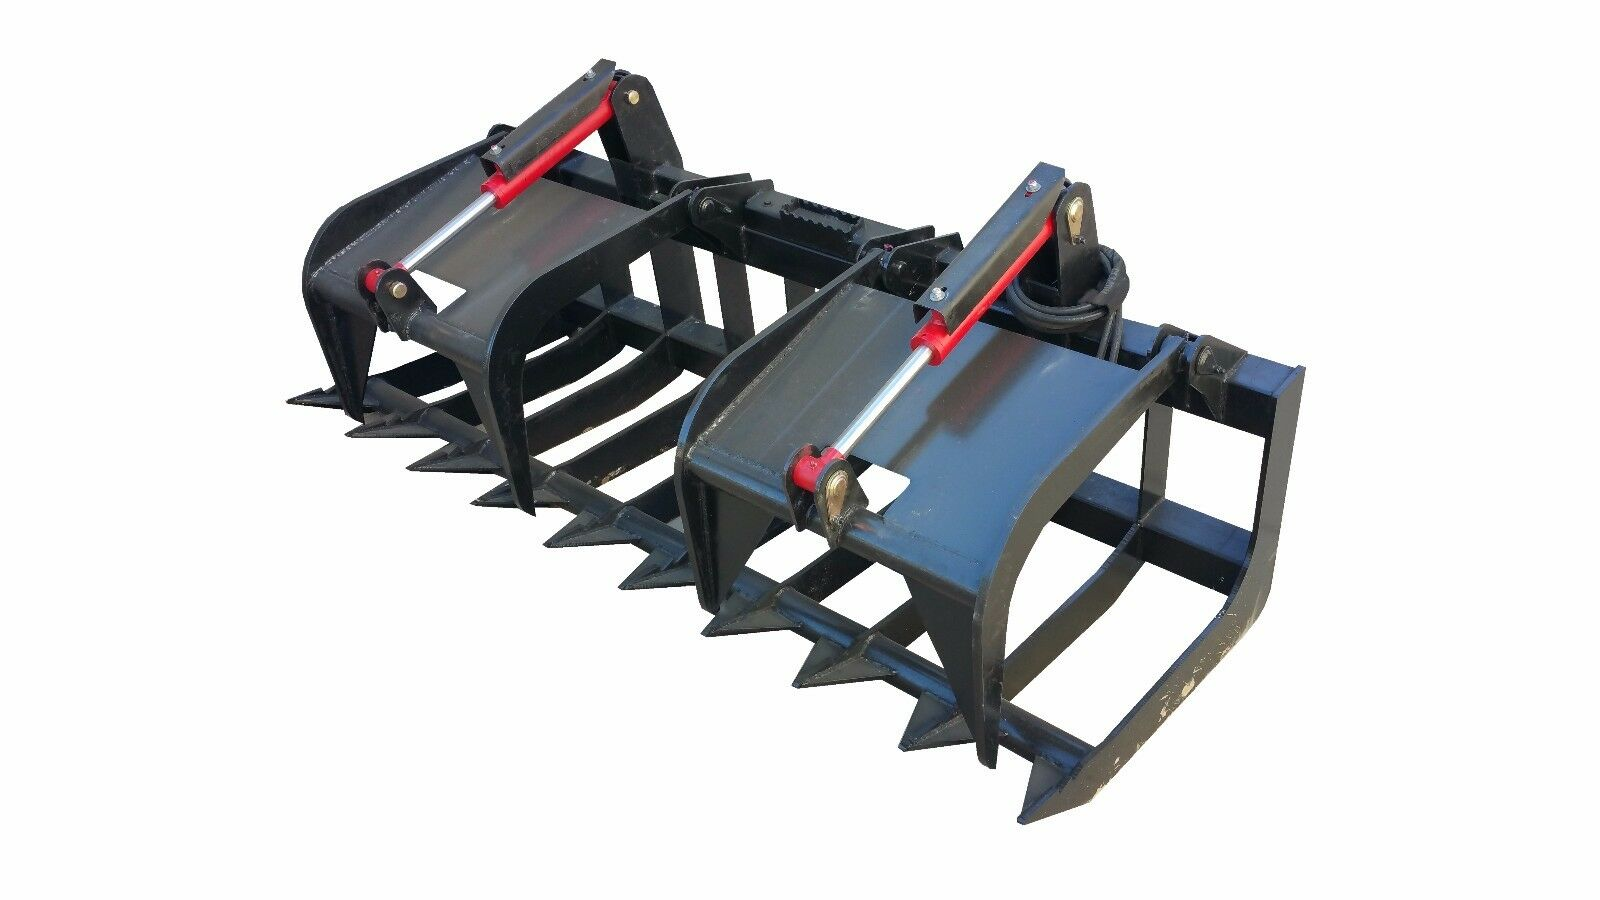 hook up attachment Find great deals on ebay for skid steer forks in fork attachments for heavy construction equipment shop with confidence find great deals on ebay for skid steer forks in fork attachments.